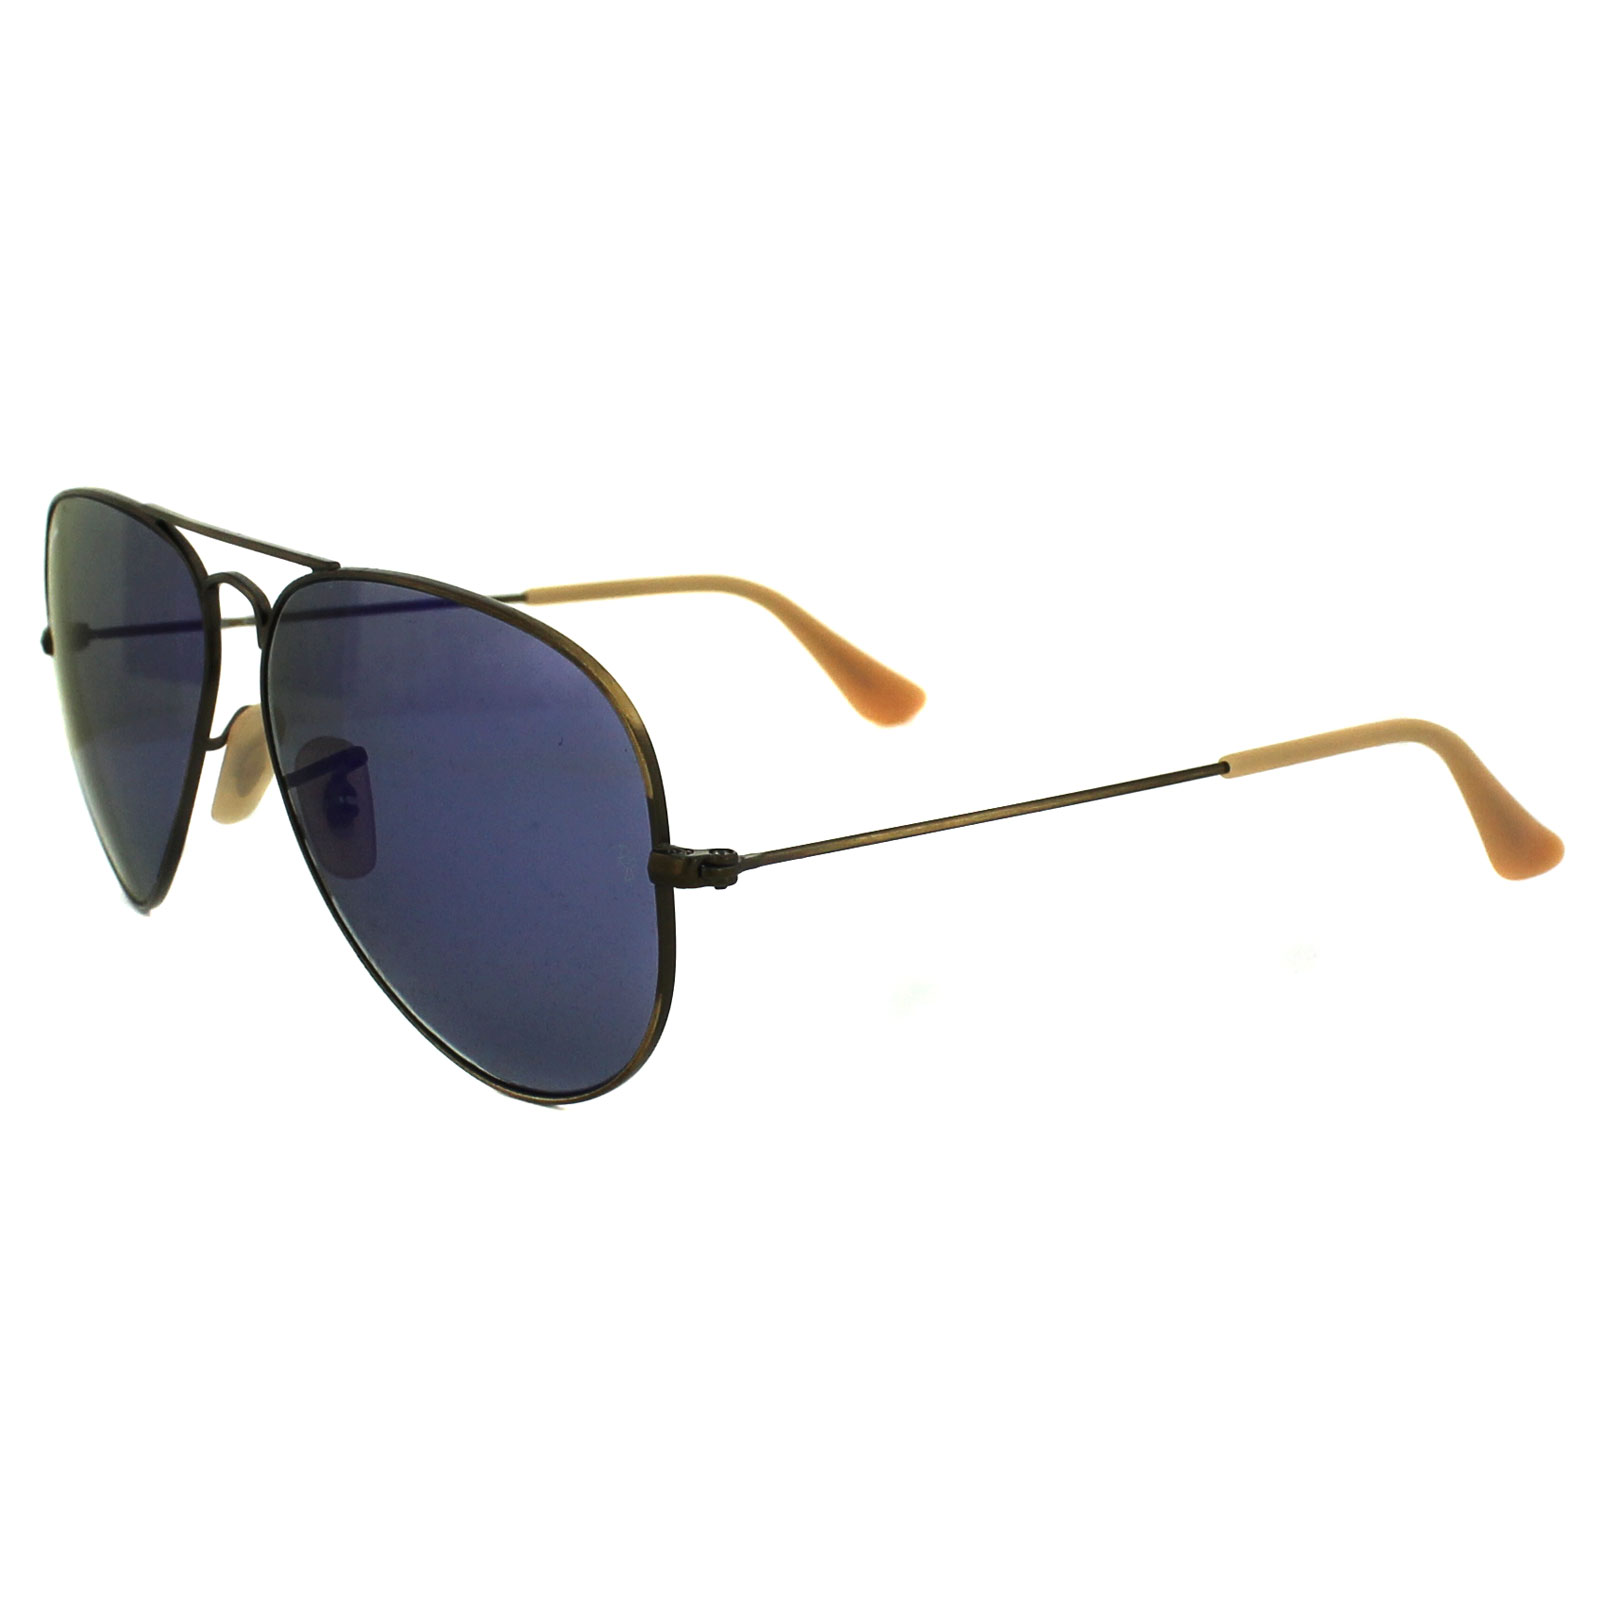 db7a8c7dd4 Sentinel Ray-Ban Sunglasses Aviator 3025 167 68 Brushed Bronze Blue Violet Flash  Mirror M